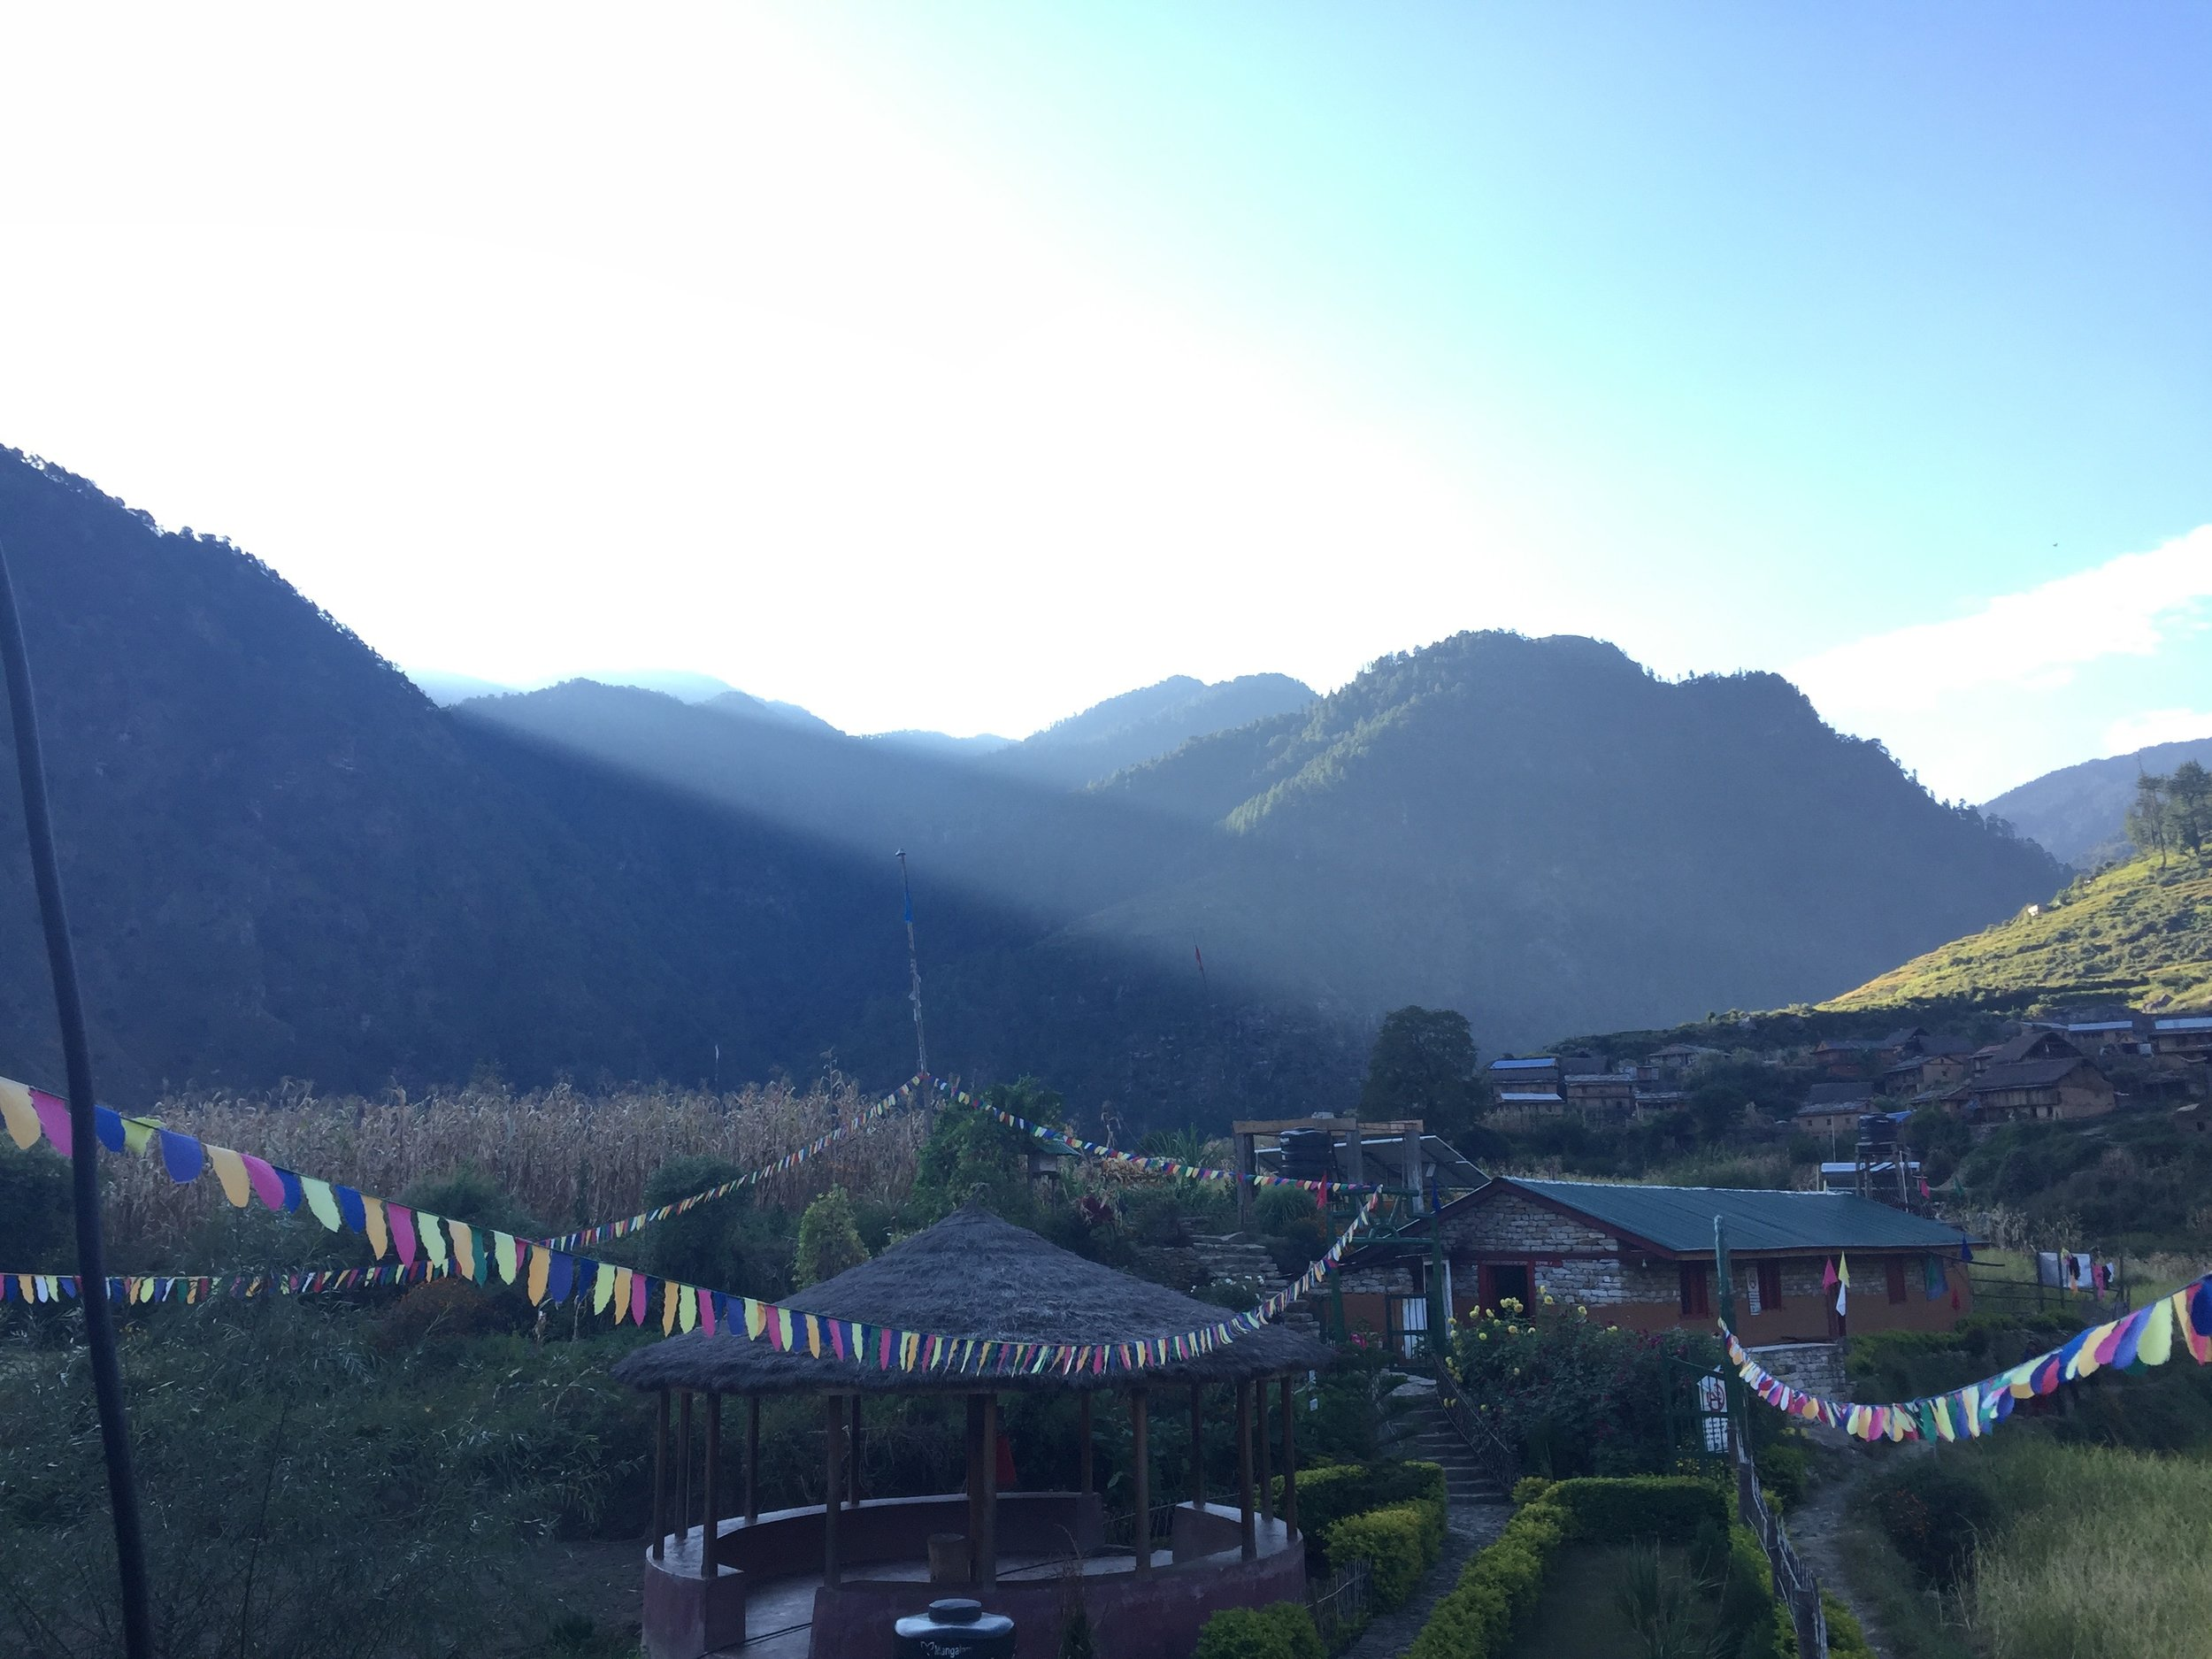 One of my favorite views of Oda, looking of the back deck of the medical clinic as the sun rises over the mountains to the East, slowly illuminating the village